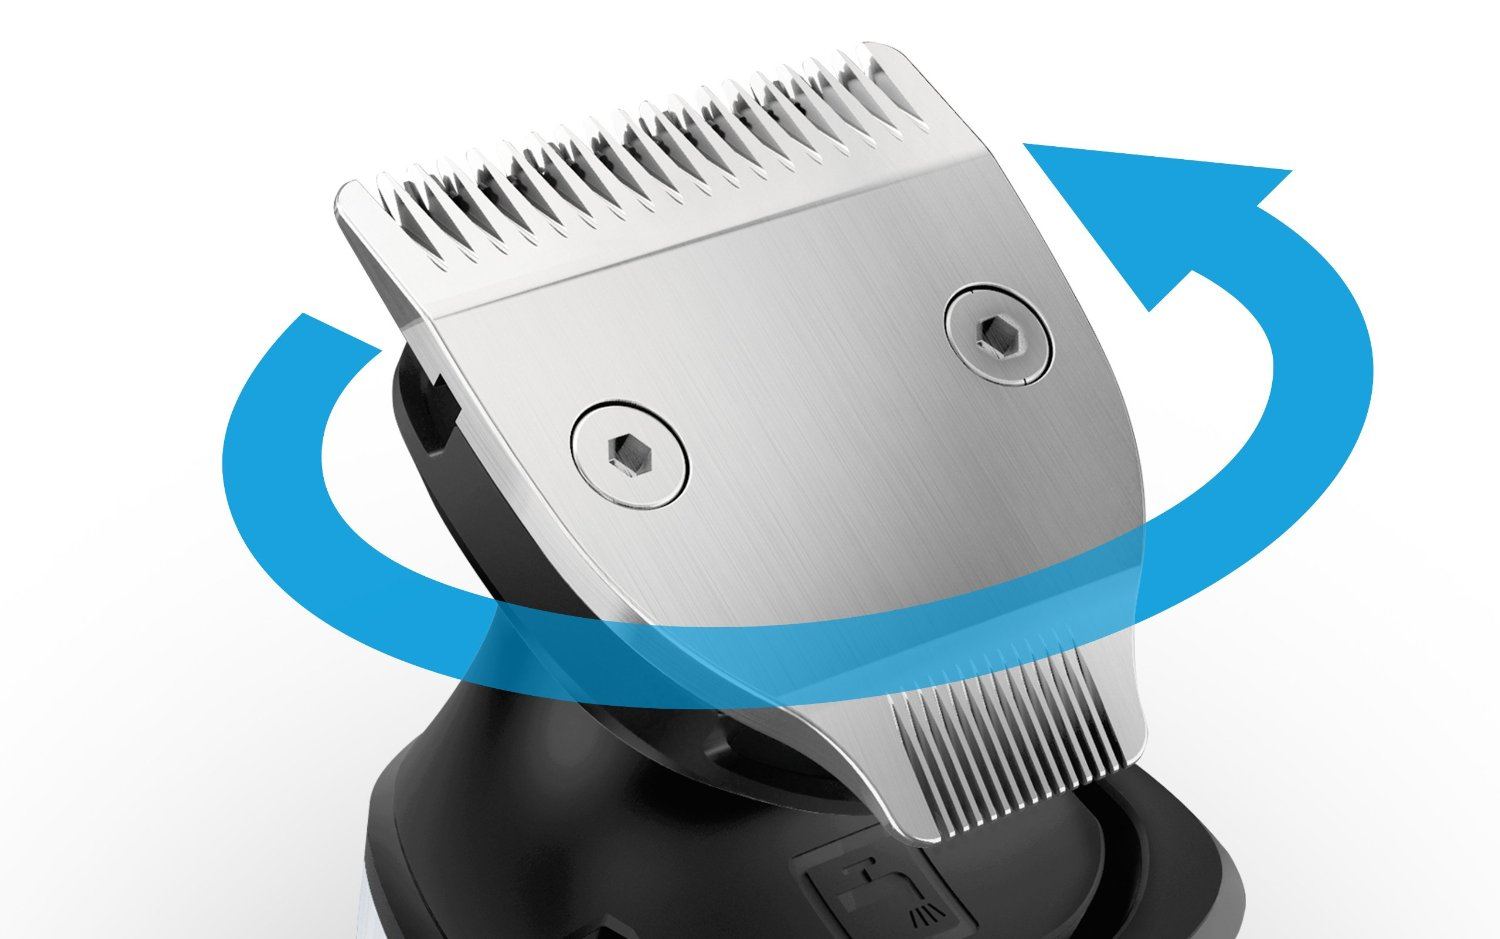 philips QS6161/32 meilleure tondeuse barbe